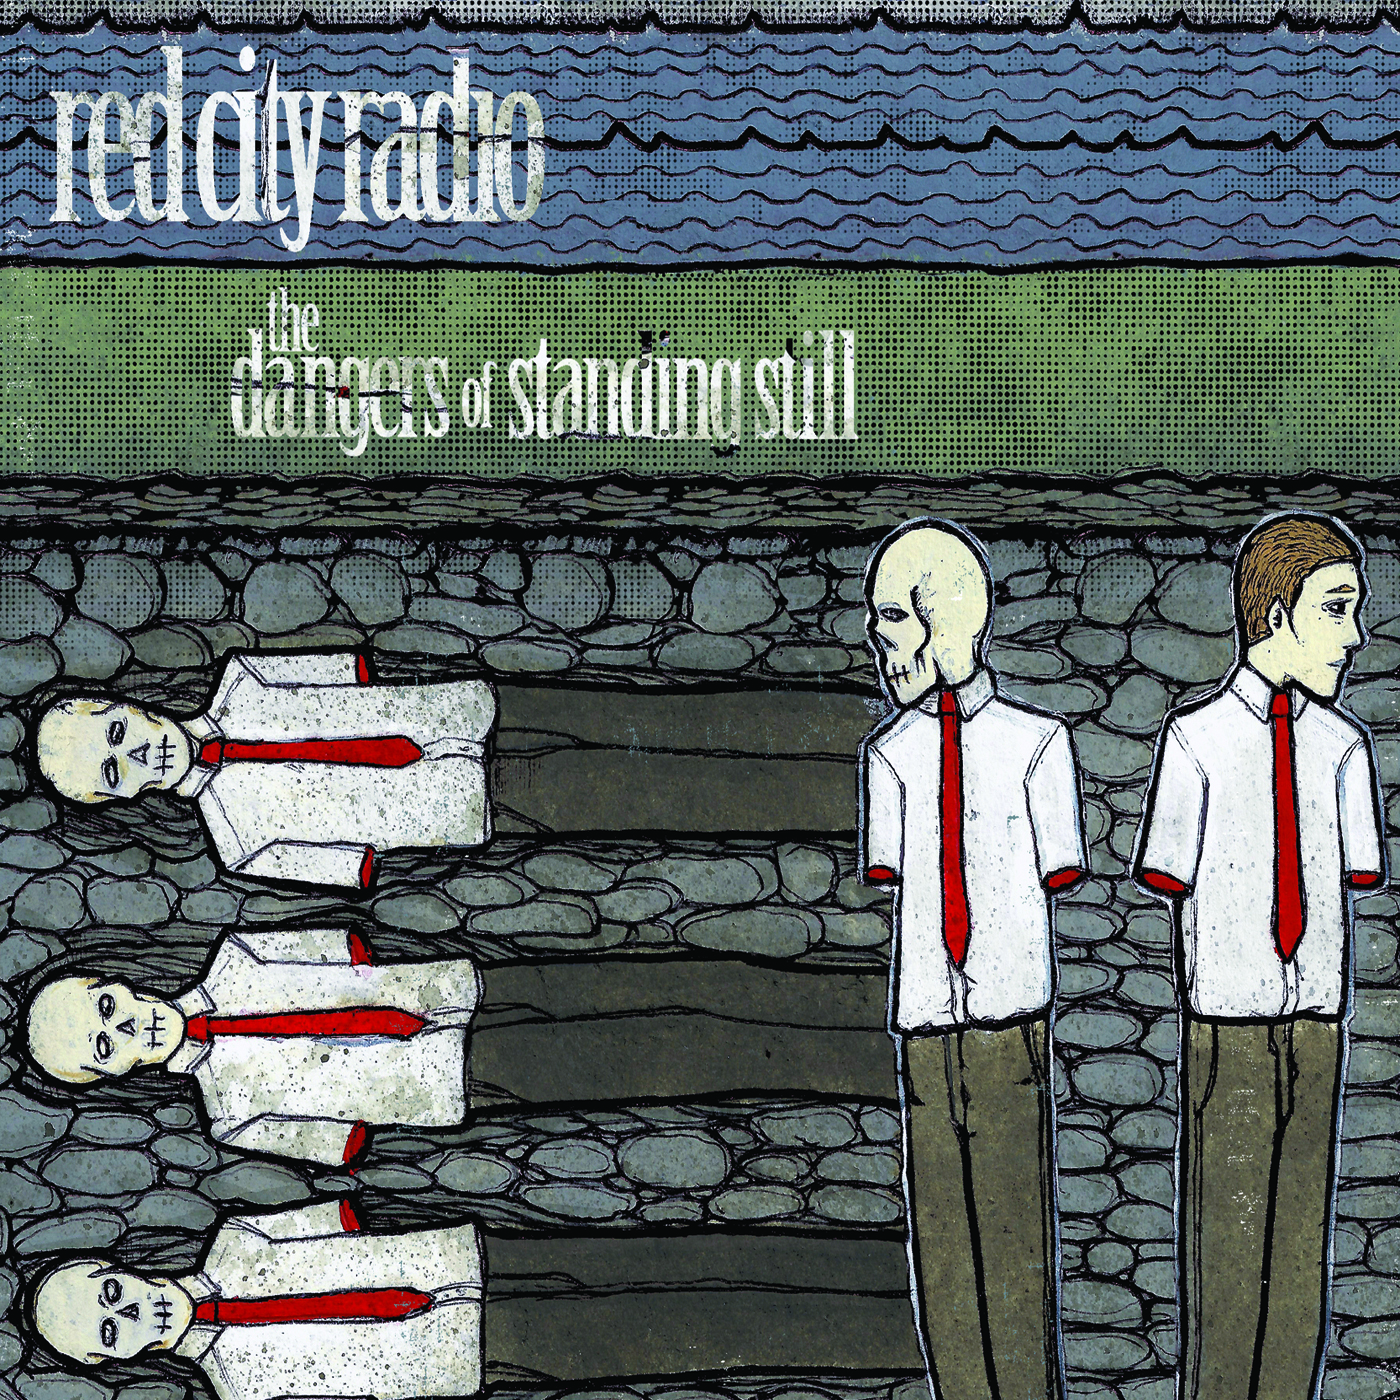 Red City Radio - The Dangers of Standing Still Digital Only (MP3 or FLAC)